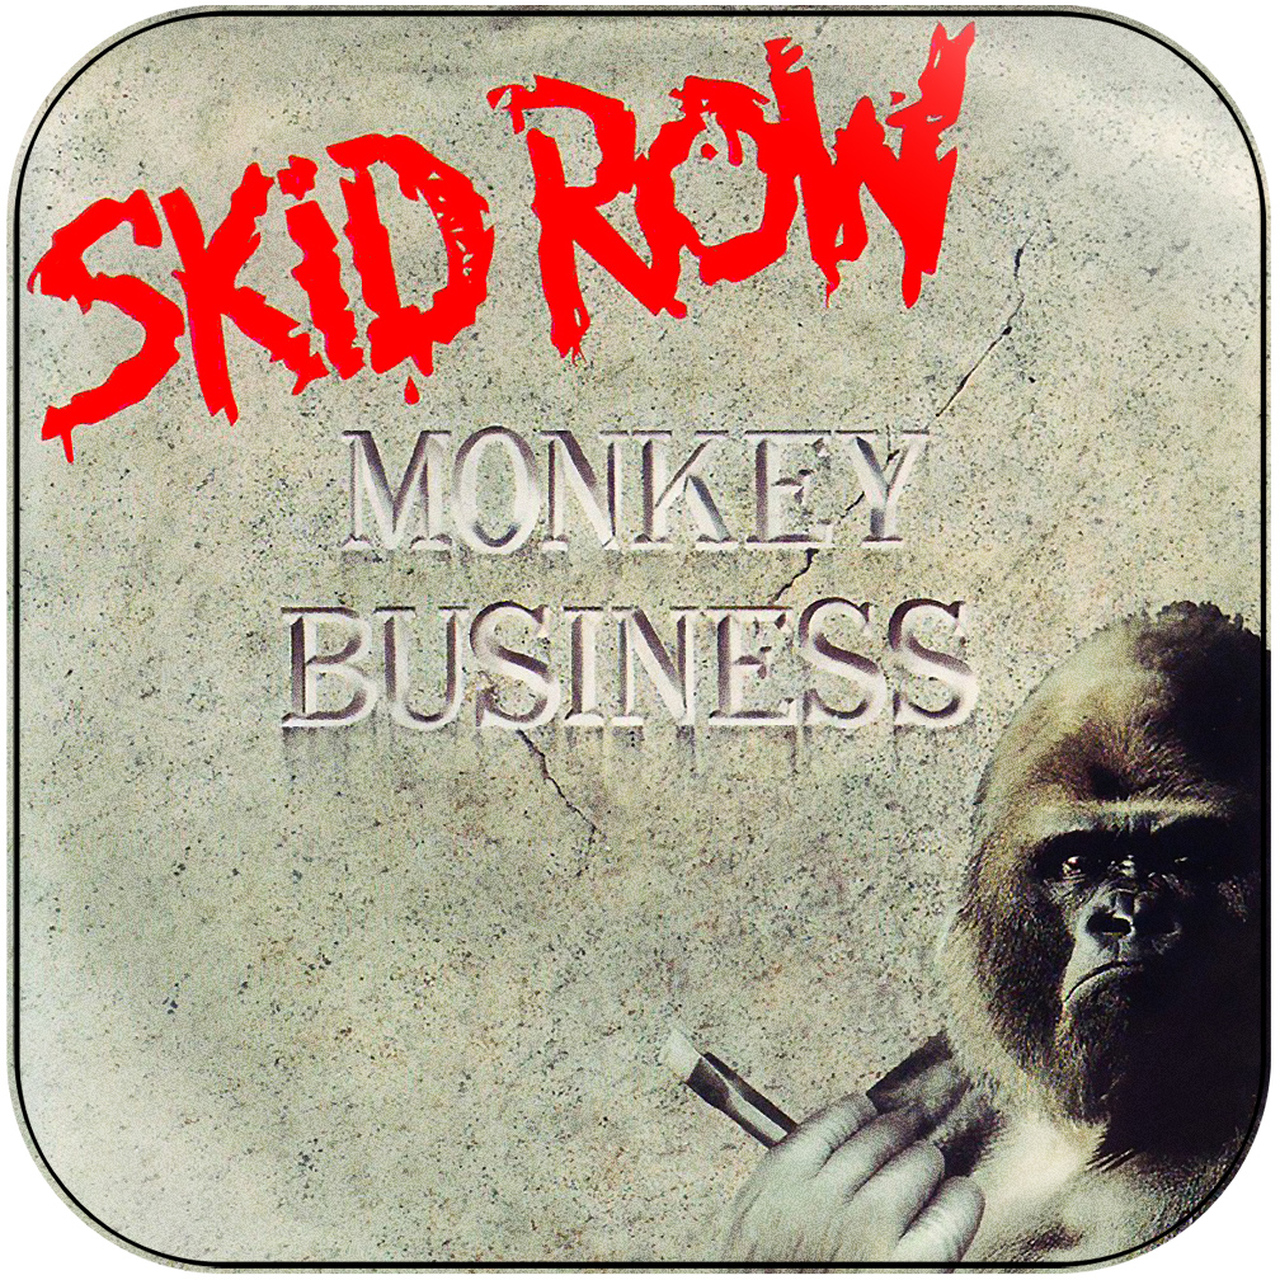 monkey-business-album-cover-sticker__19902.1540257010